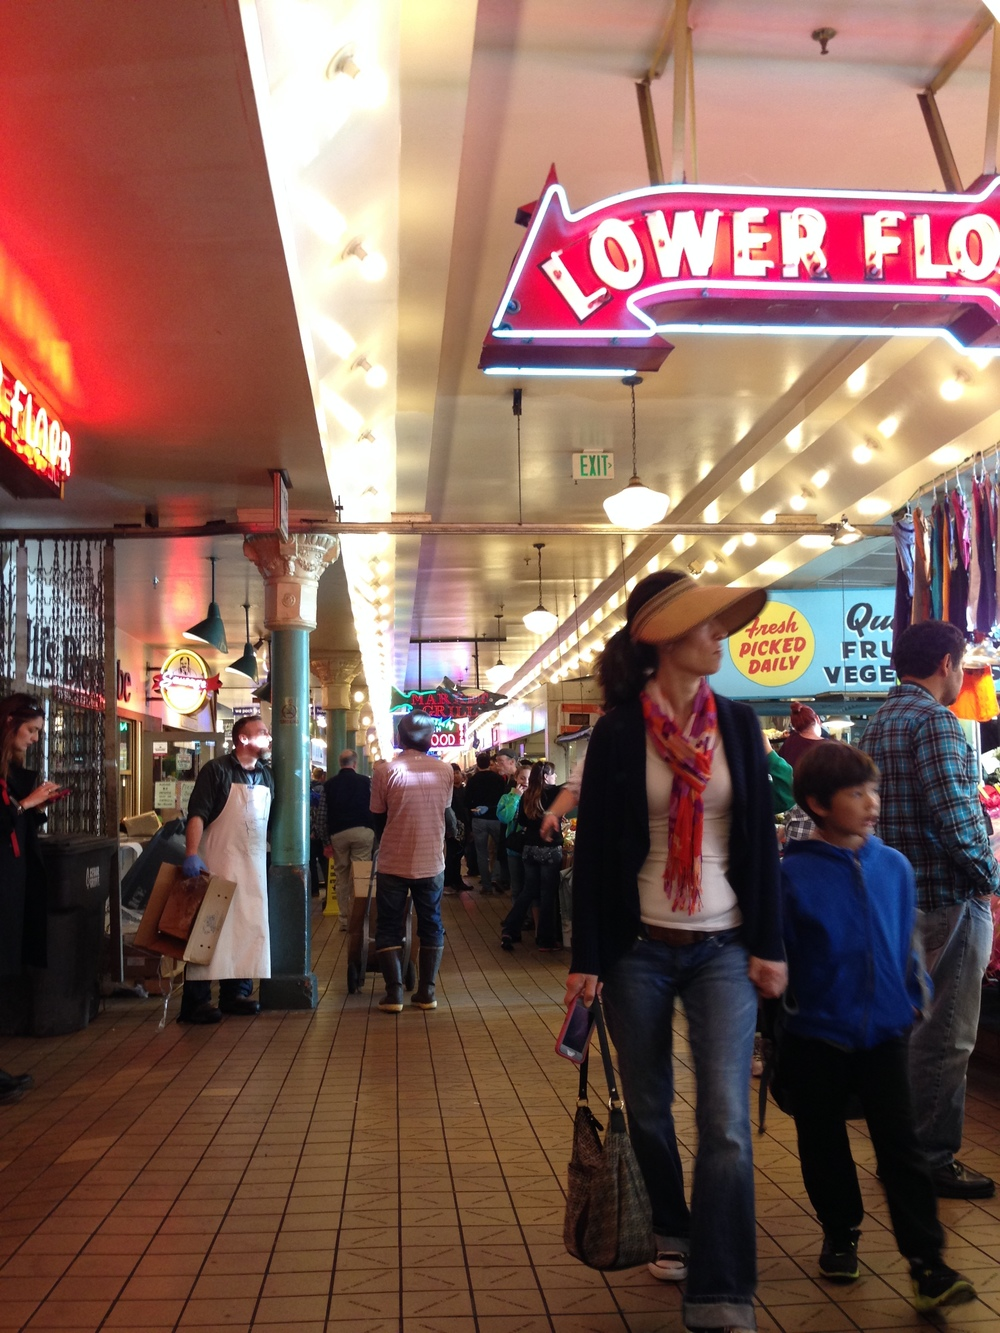 The bustling market at Pikes Place. (photo by Kathy)